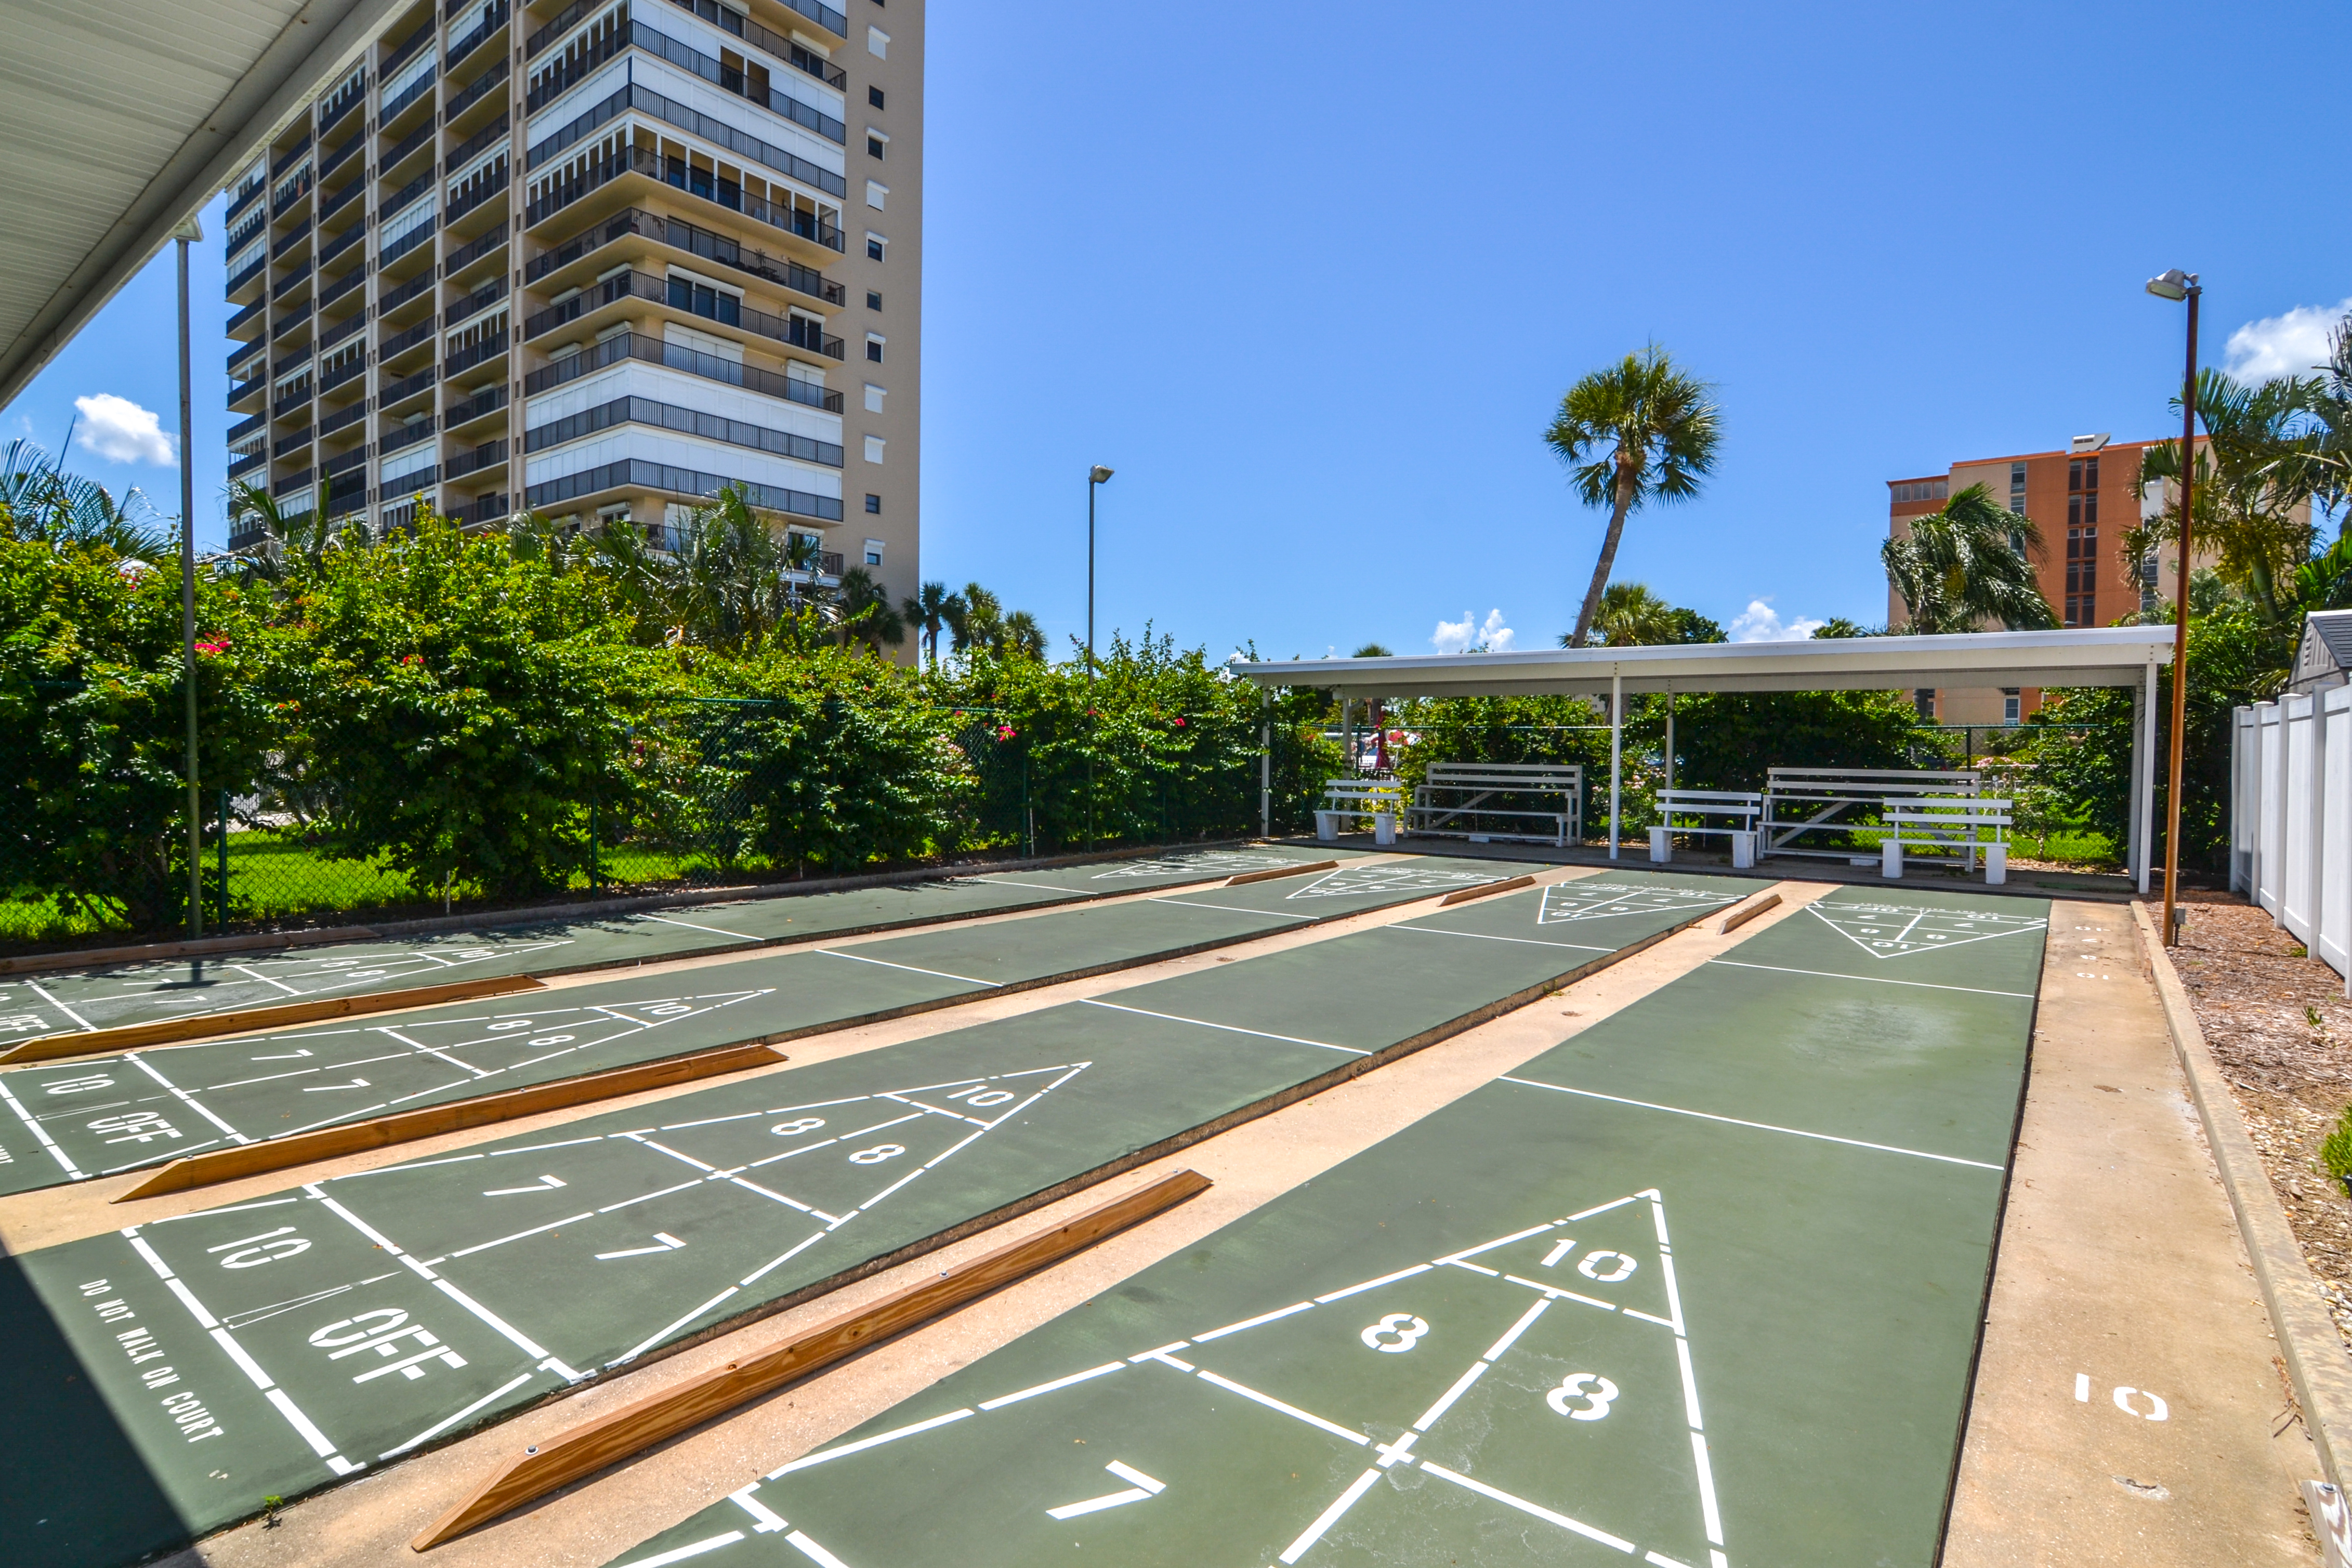 Shuffleboard at Bay Island